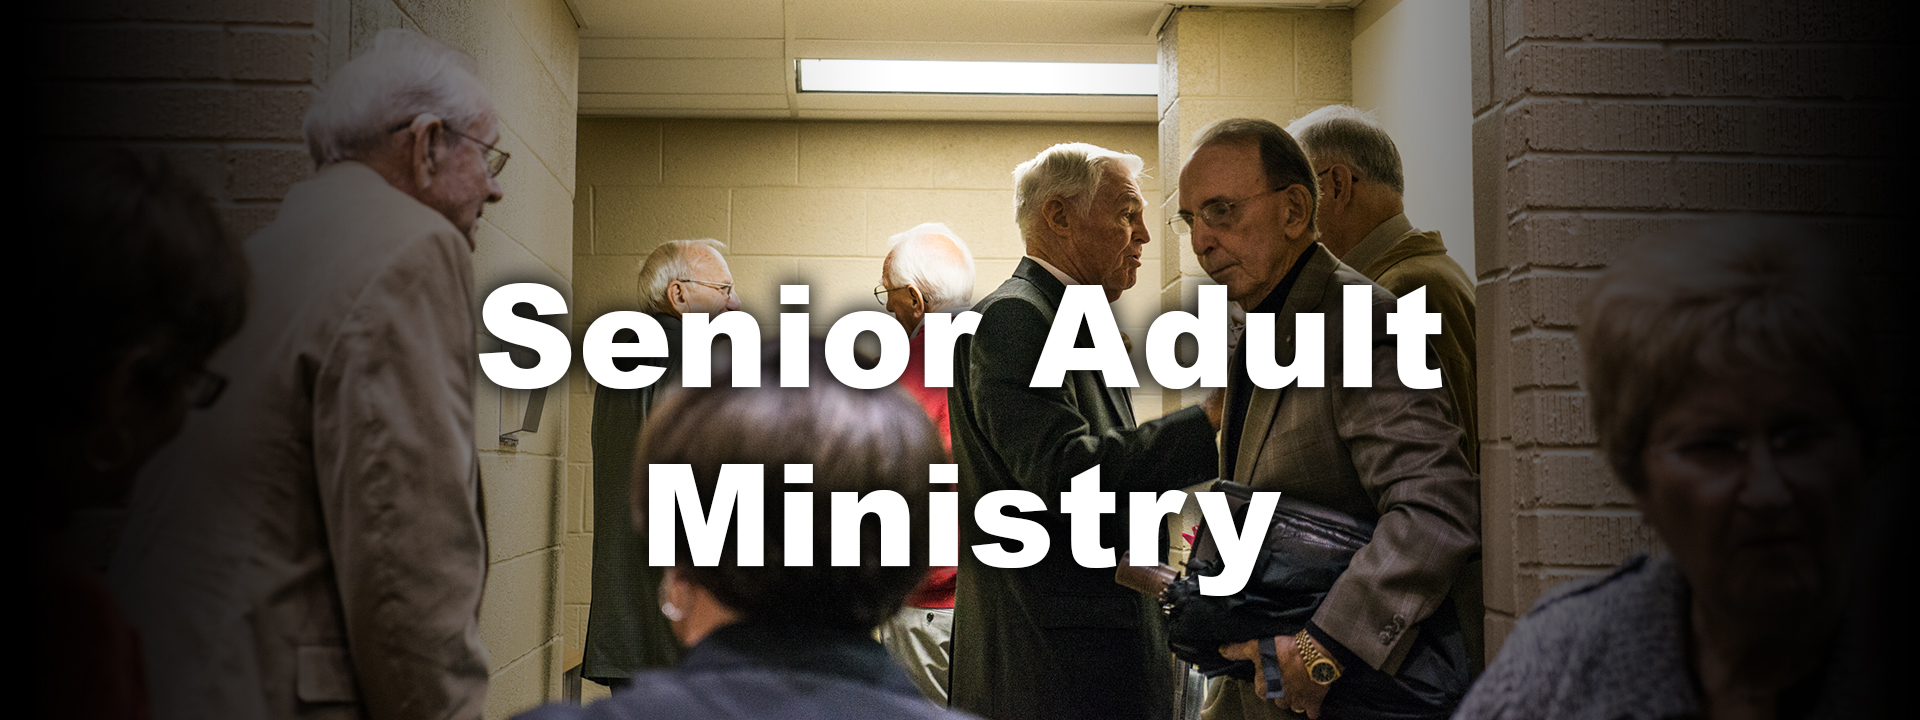 Phrase... Older adult ministry discussion